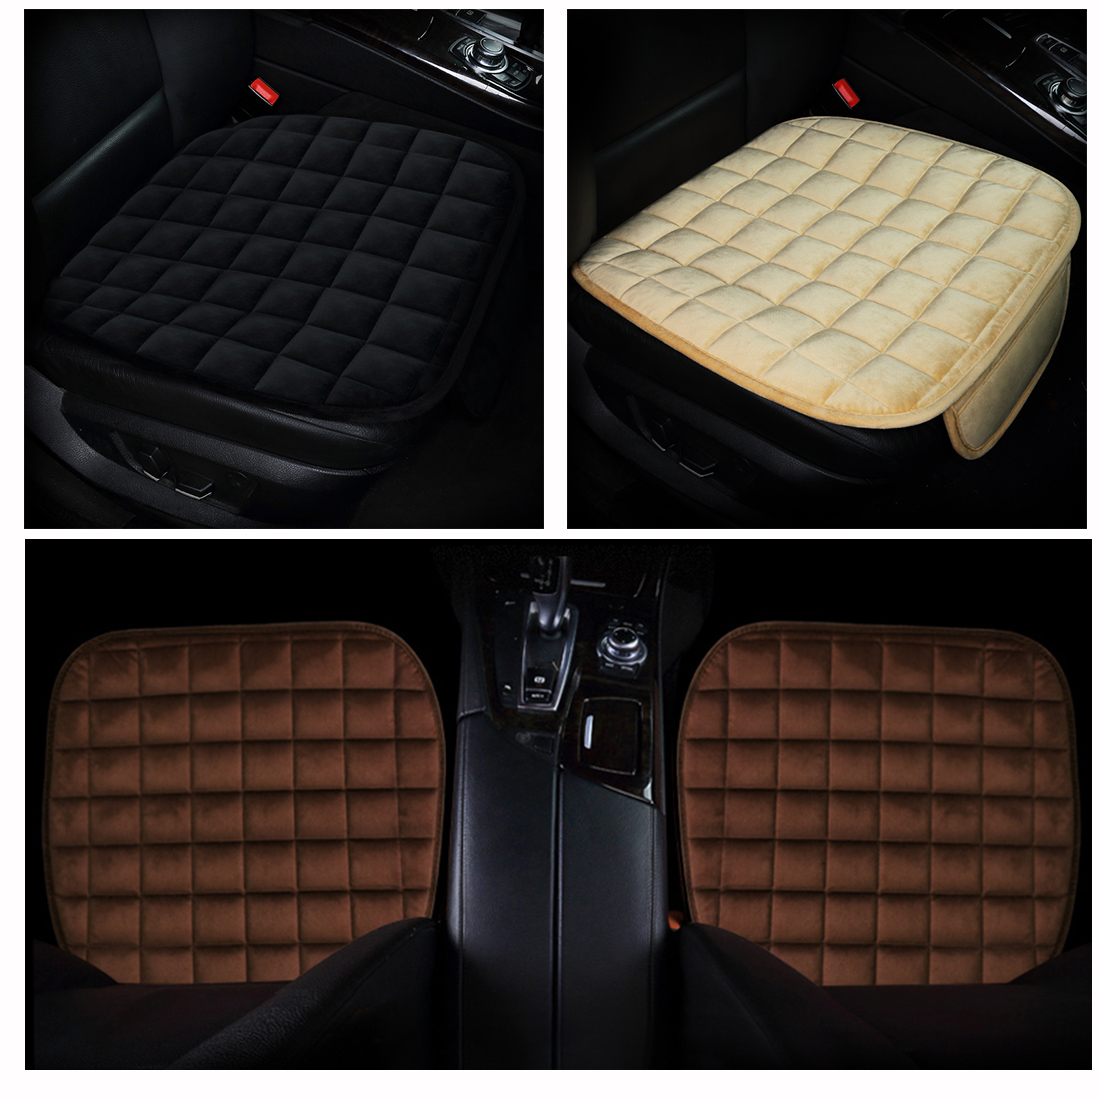 Dewtreetali Breathable Front Square Velvet Car Seat Cover Winter Warm Car Seat Protector Pad Cushion Auto Seat Covers